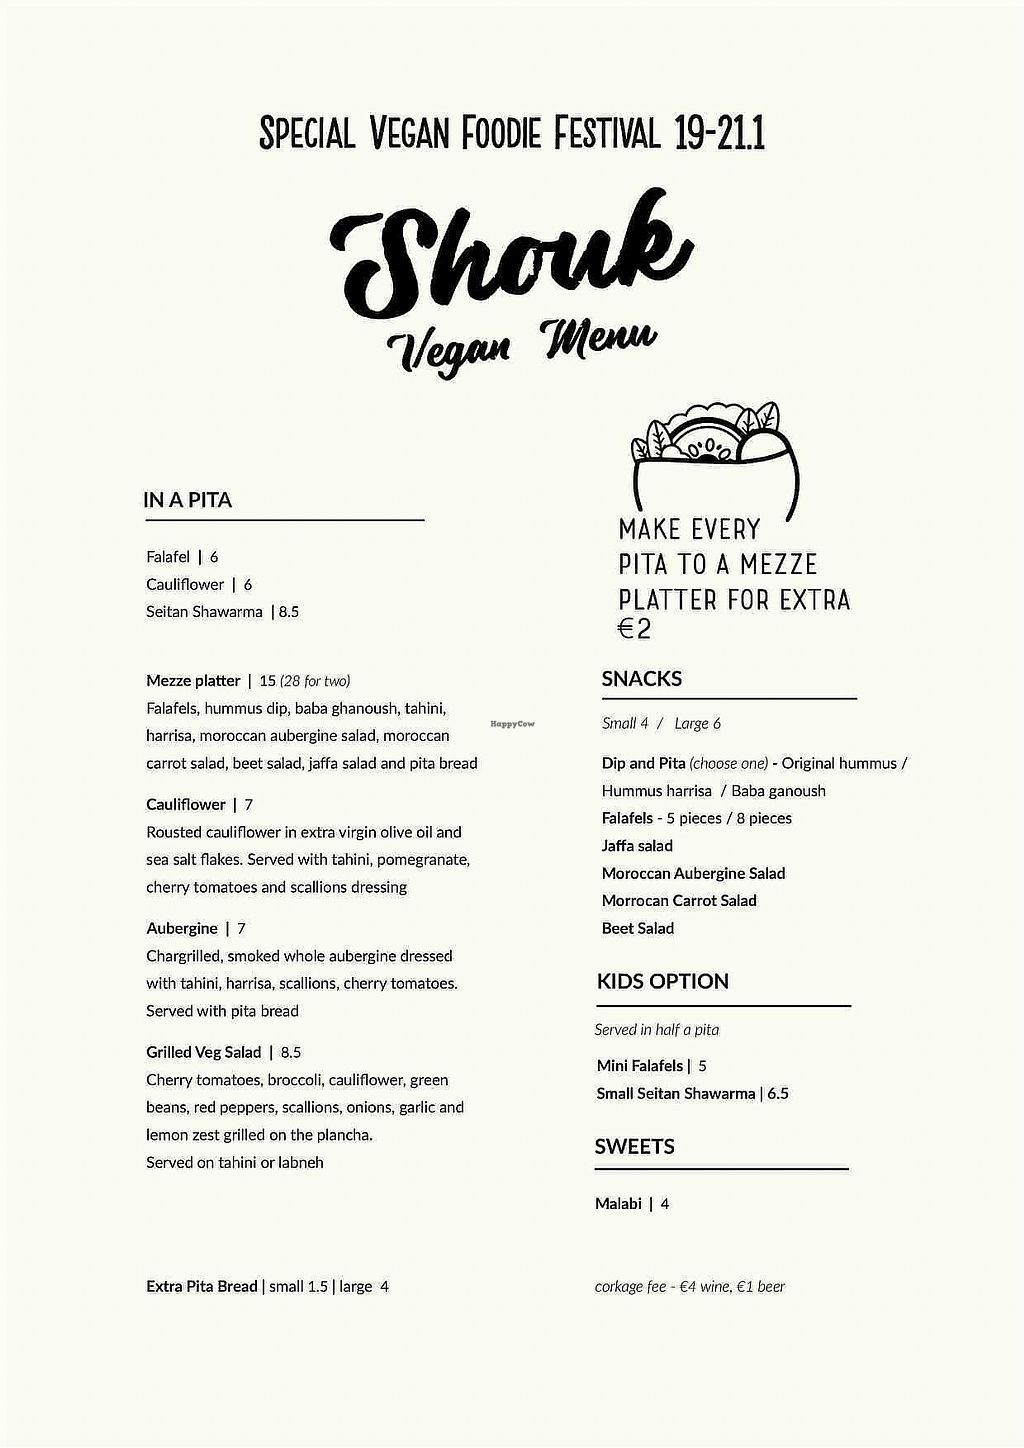 """Photo of Shouk  by <a href=""""/members/profile/Cnagyro"""">Cnagyro</a> <br/>Vegan menu <br/> February 14, 2018  - <a href='/contact/abuse/image/111873/359158'>Report</a>"""